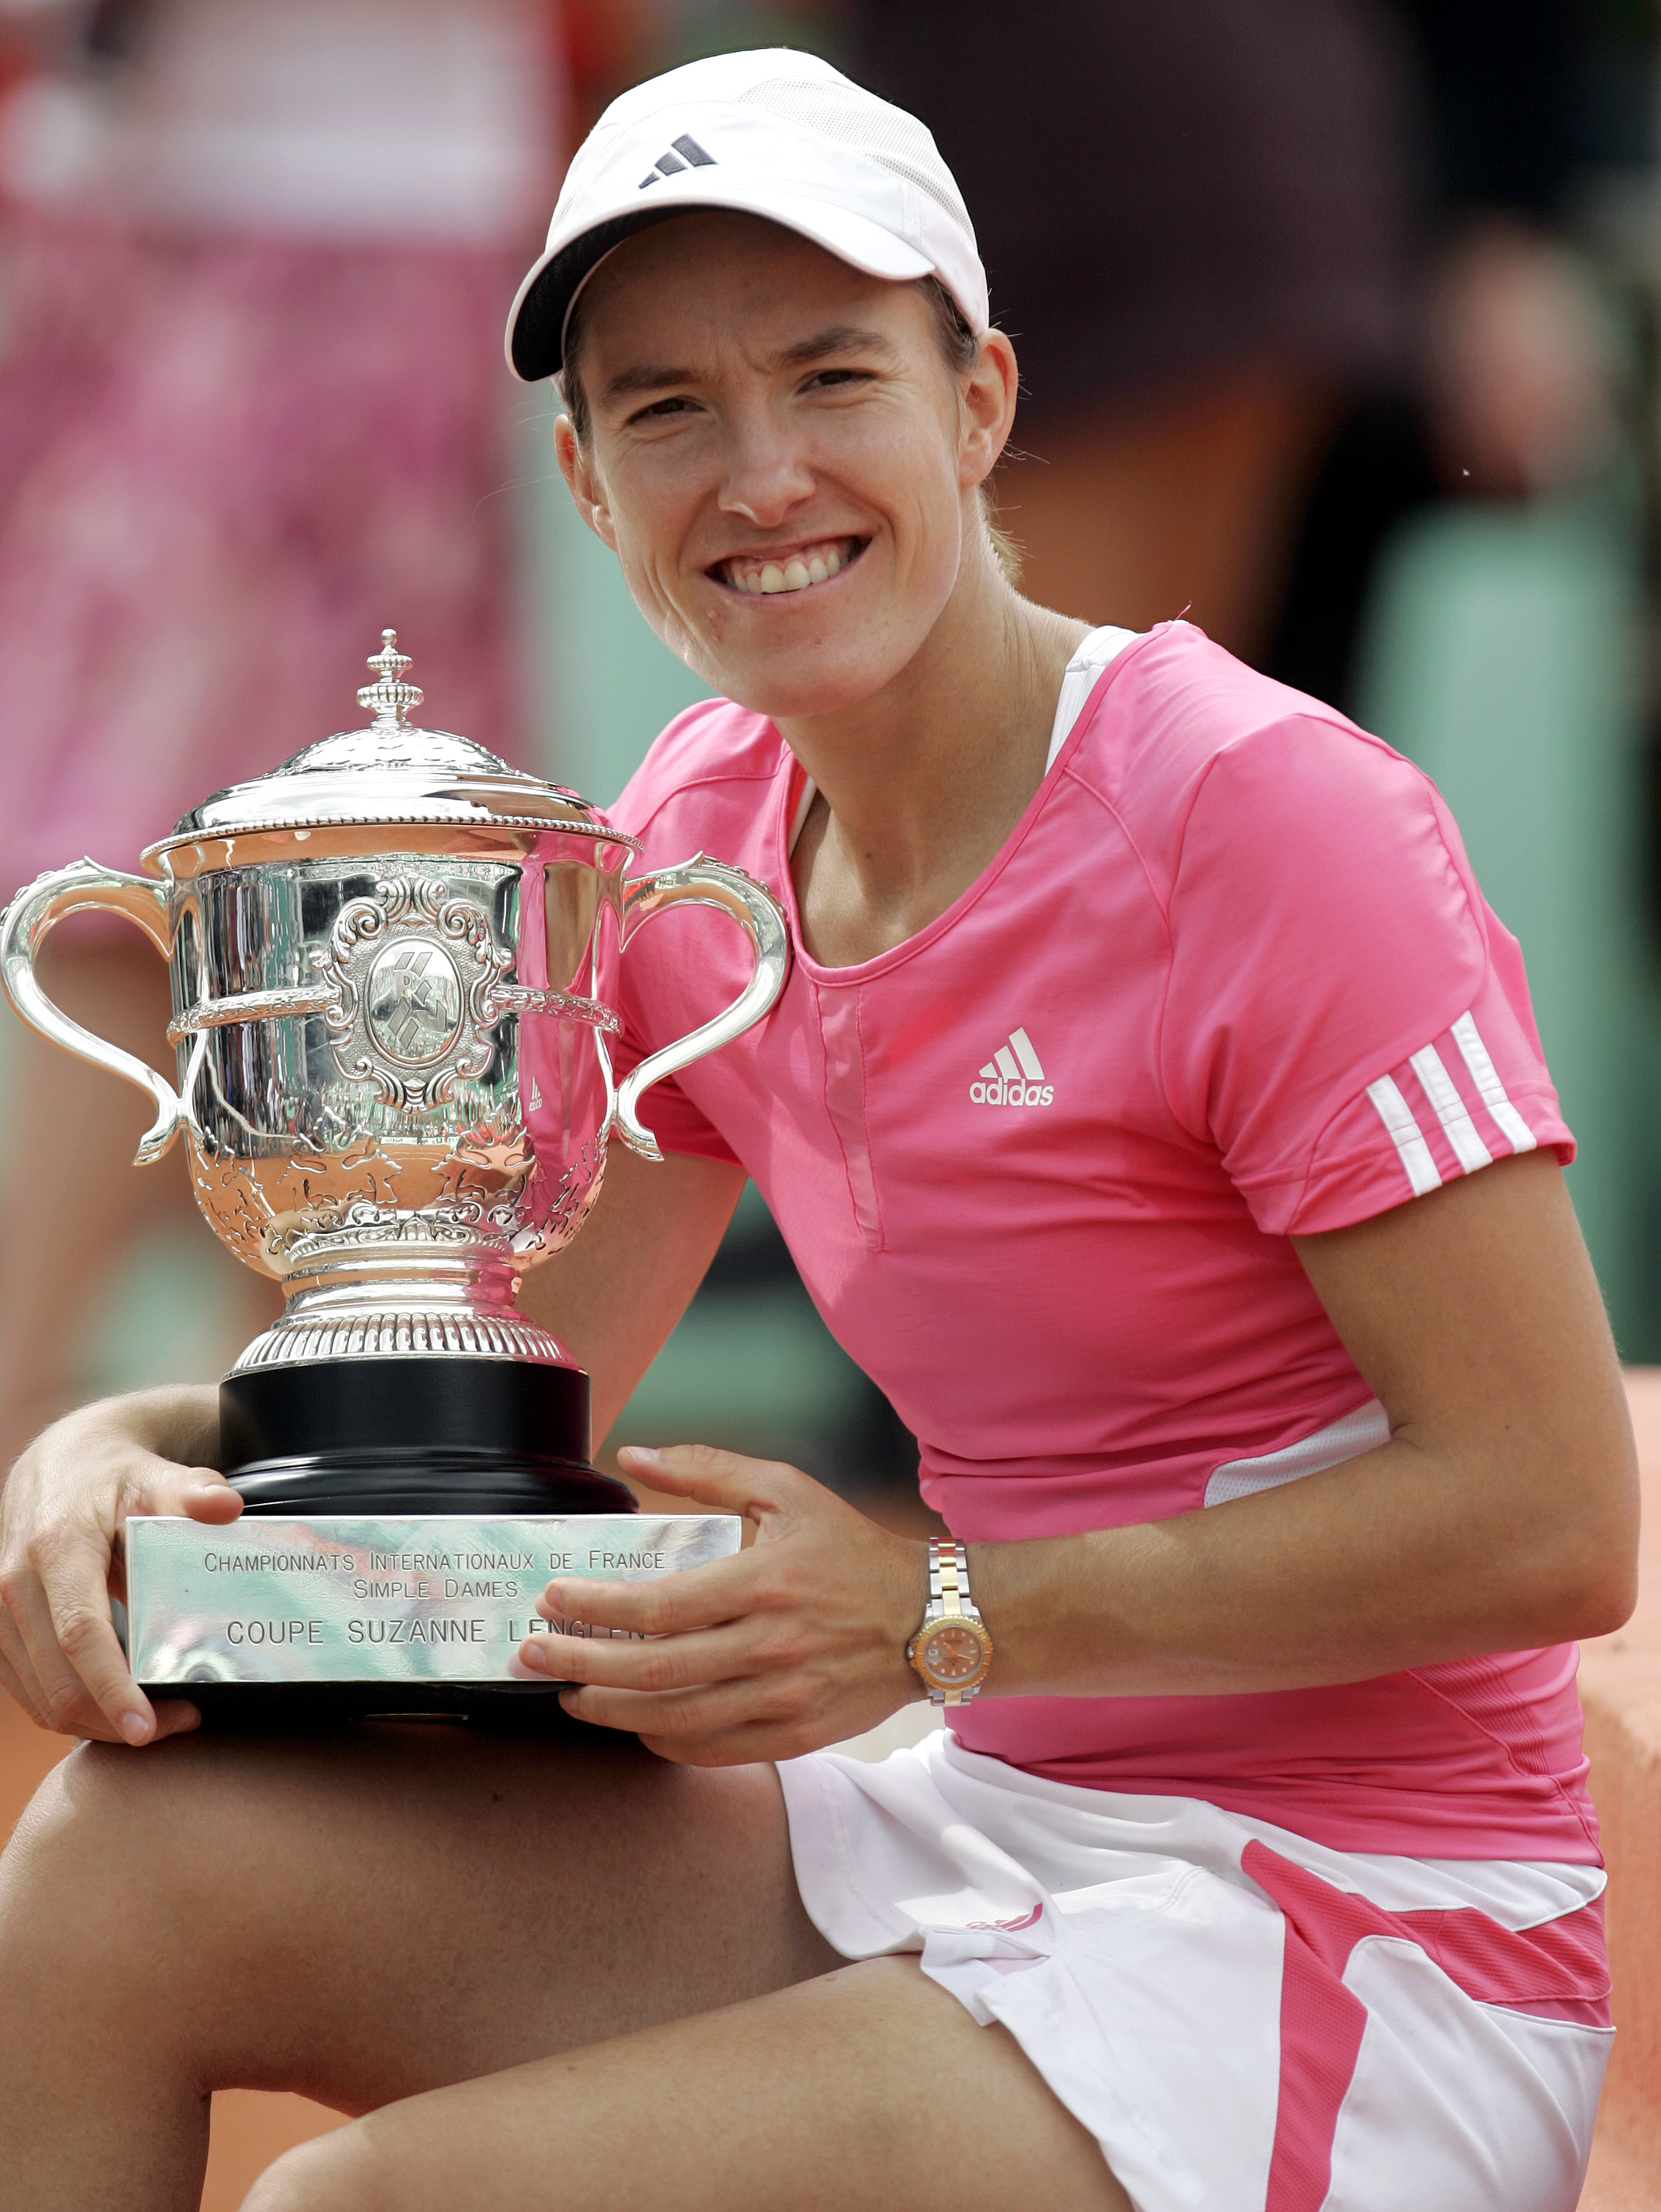 FILE - In this June 9, 2007, file photo, Belgium's Justine Henin poses with the trophy after beating Serbia's Ana Ivanovic in the women's final match of the French Open tennis tournament at Roland Garros stadium in Paris. Justine Henin and Marat Safin, wh